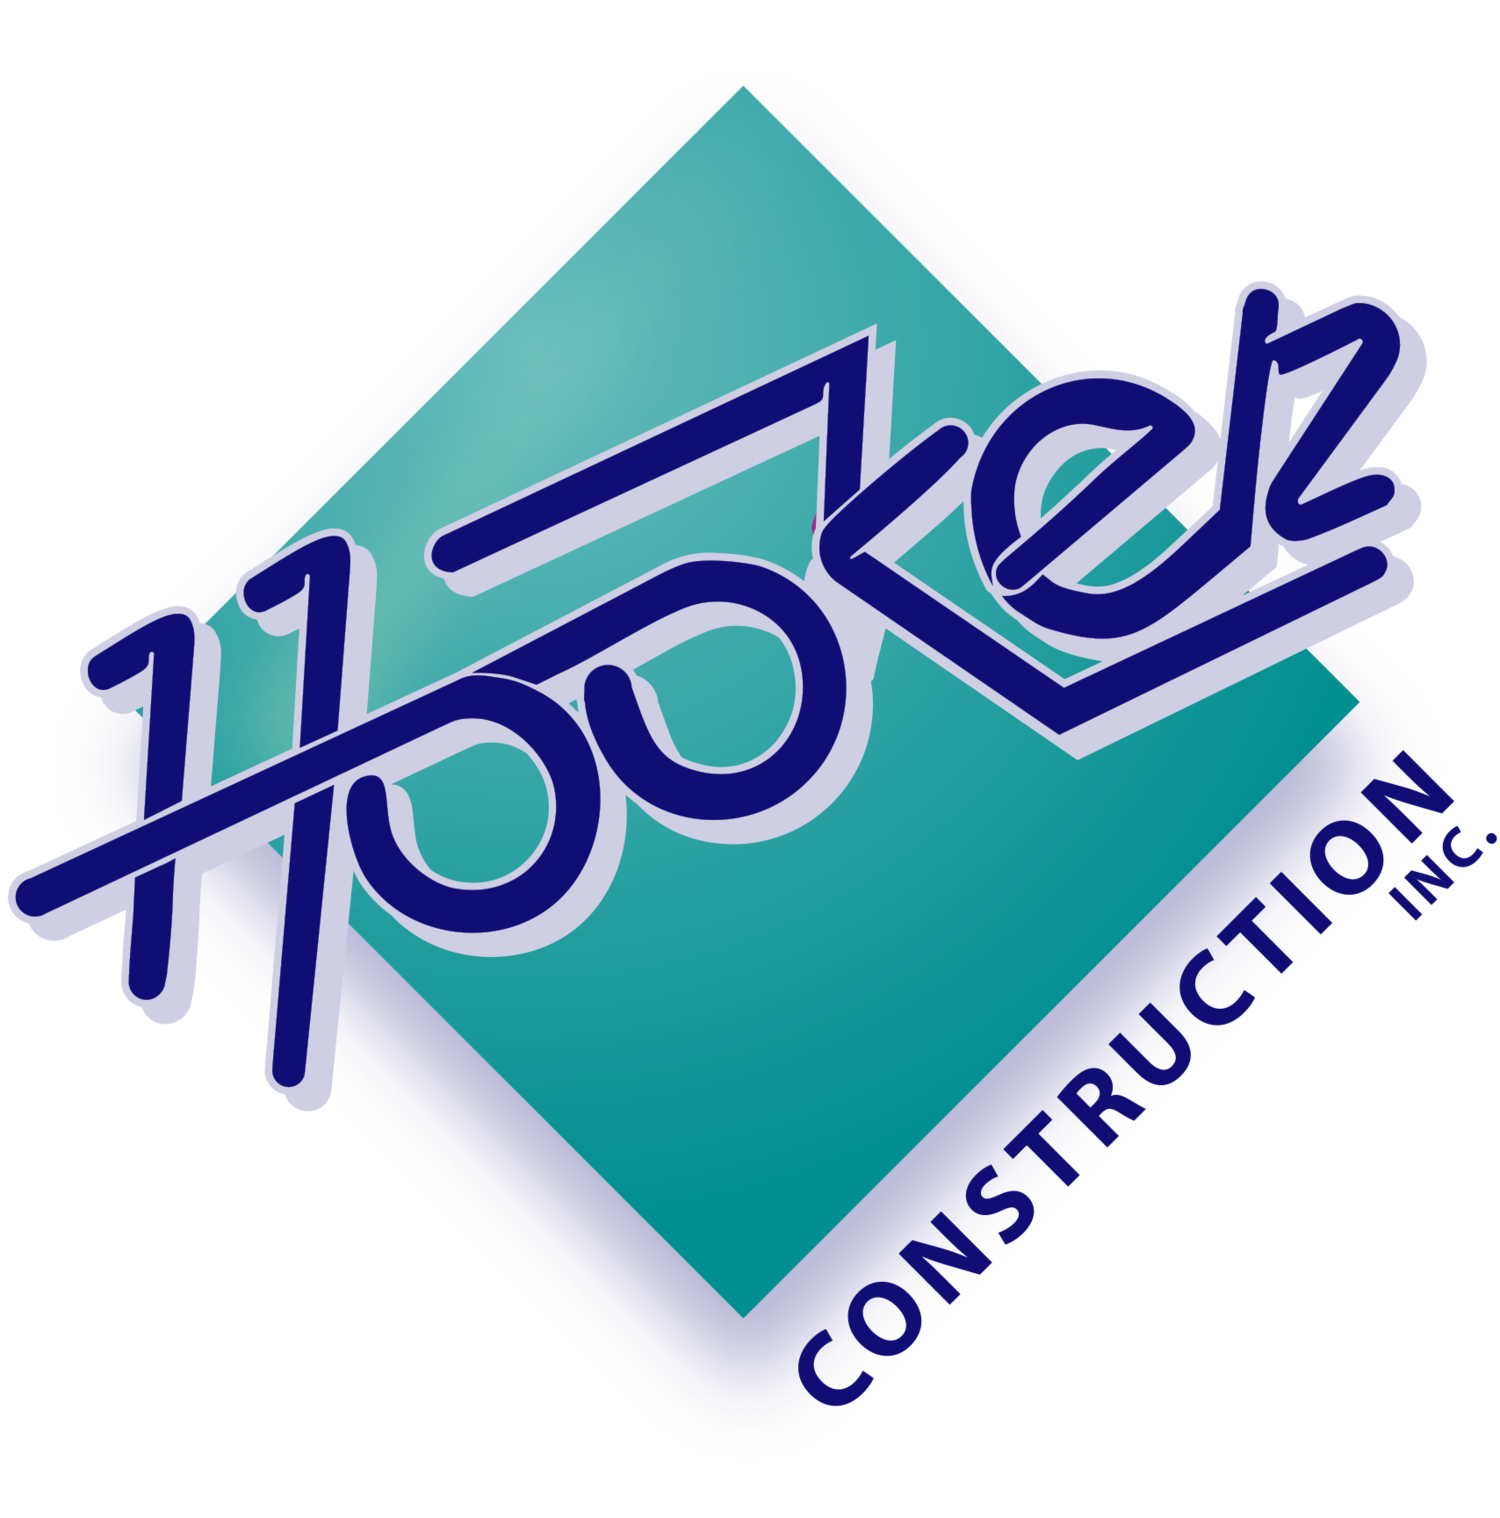 Hooker Construction